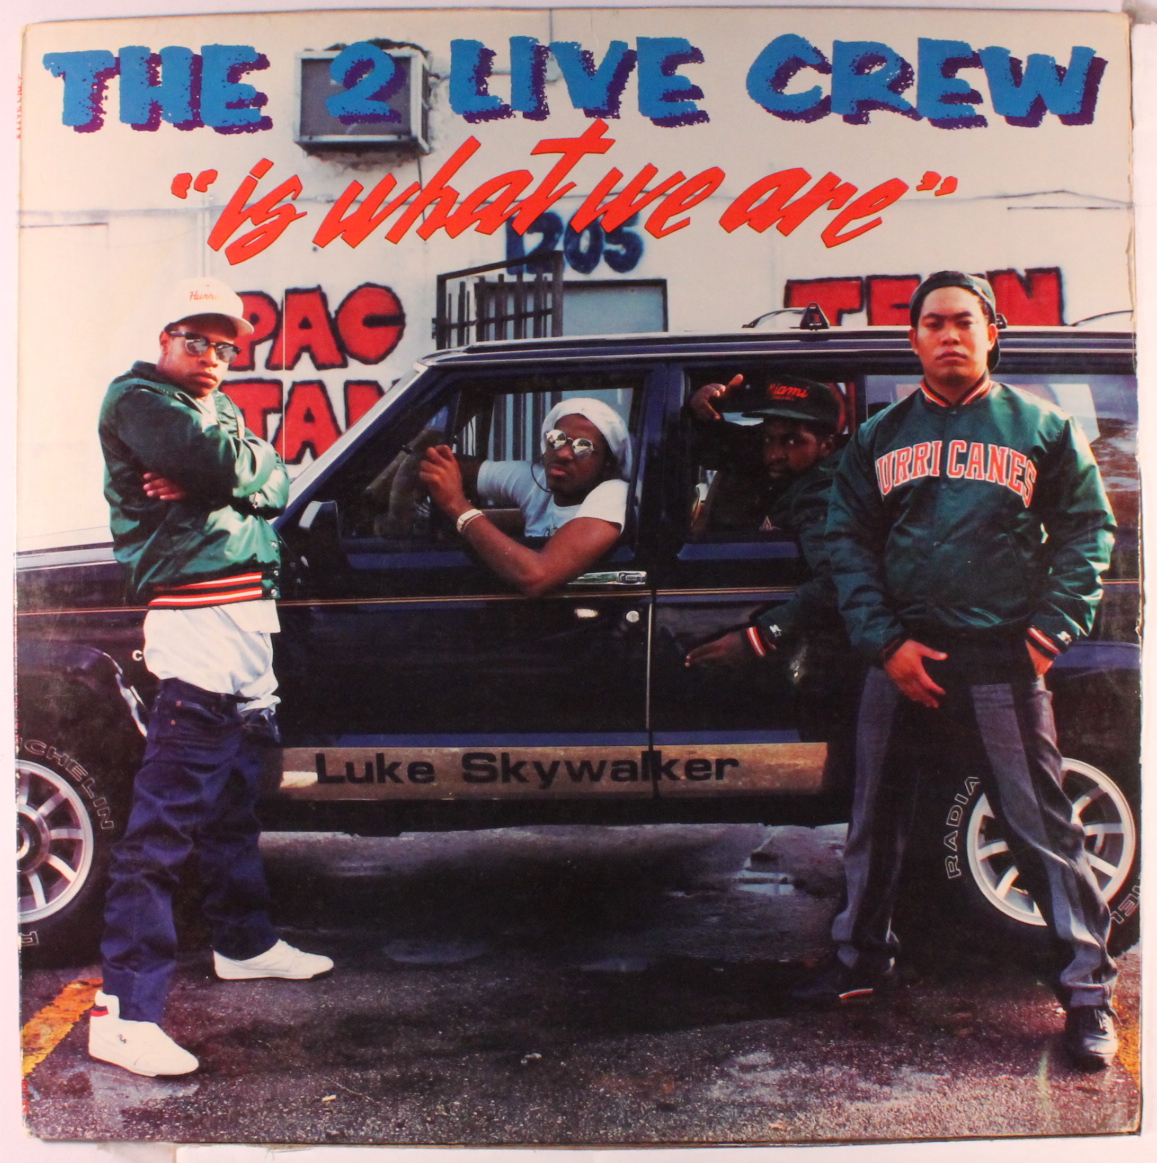 NSFW: The Night the 2 Live Crew Came to Town - HottyToddy